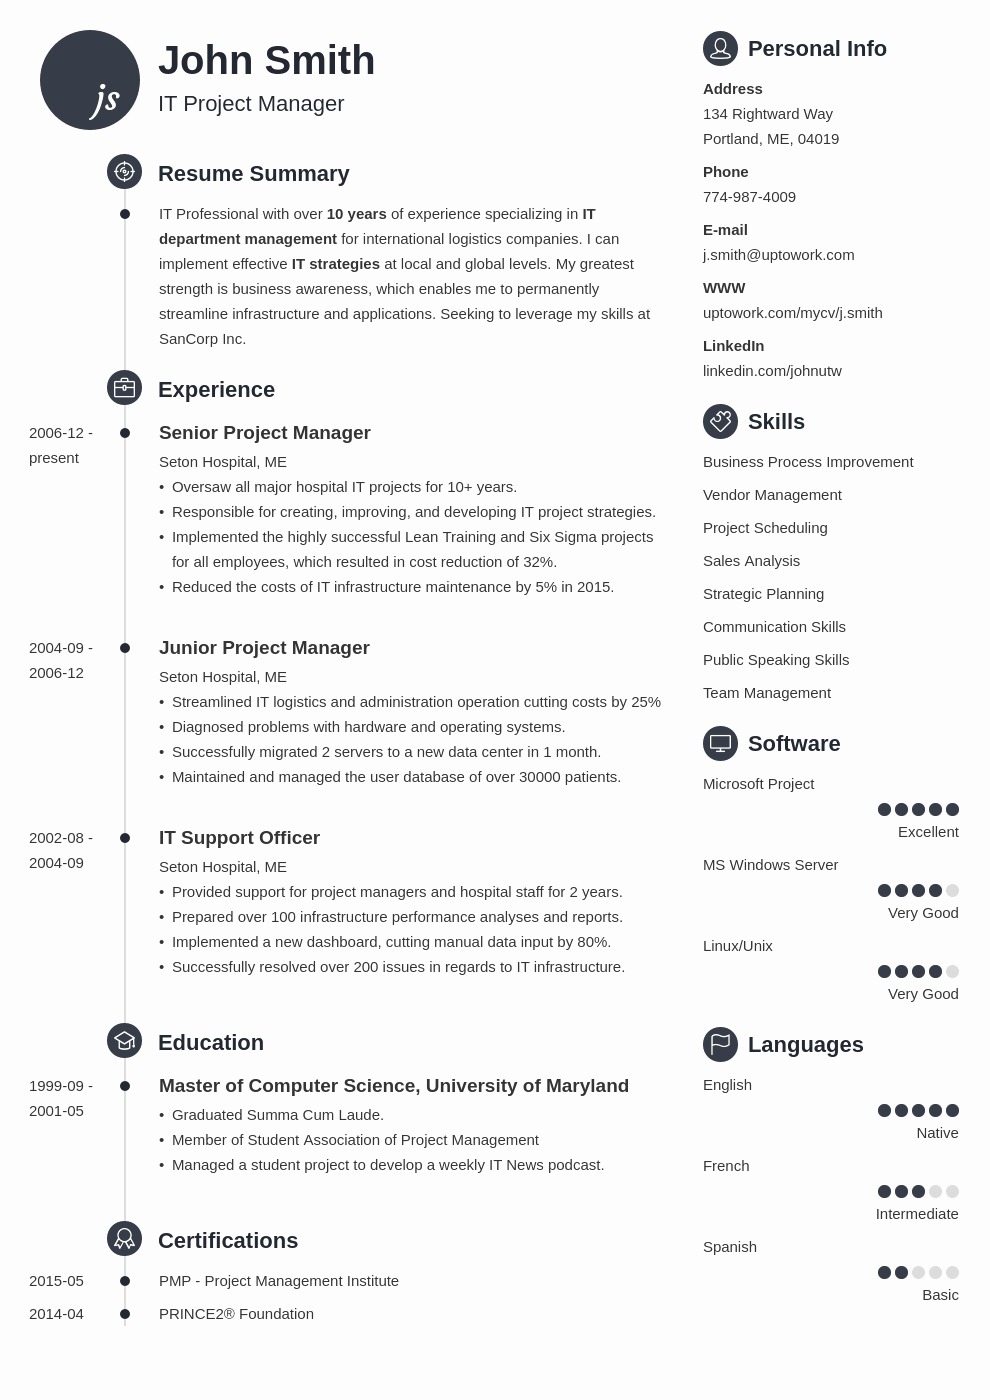 Download Free Professional Resume Templates Awesome 20 Cv Templates Create A Professional Cv & Download In 5